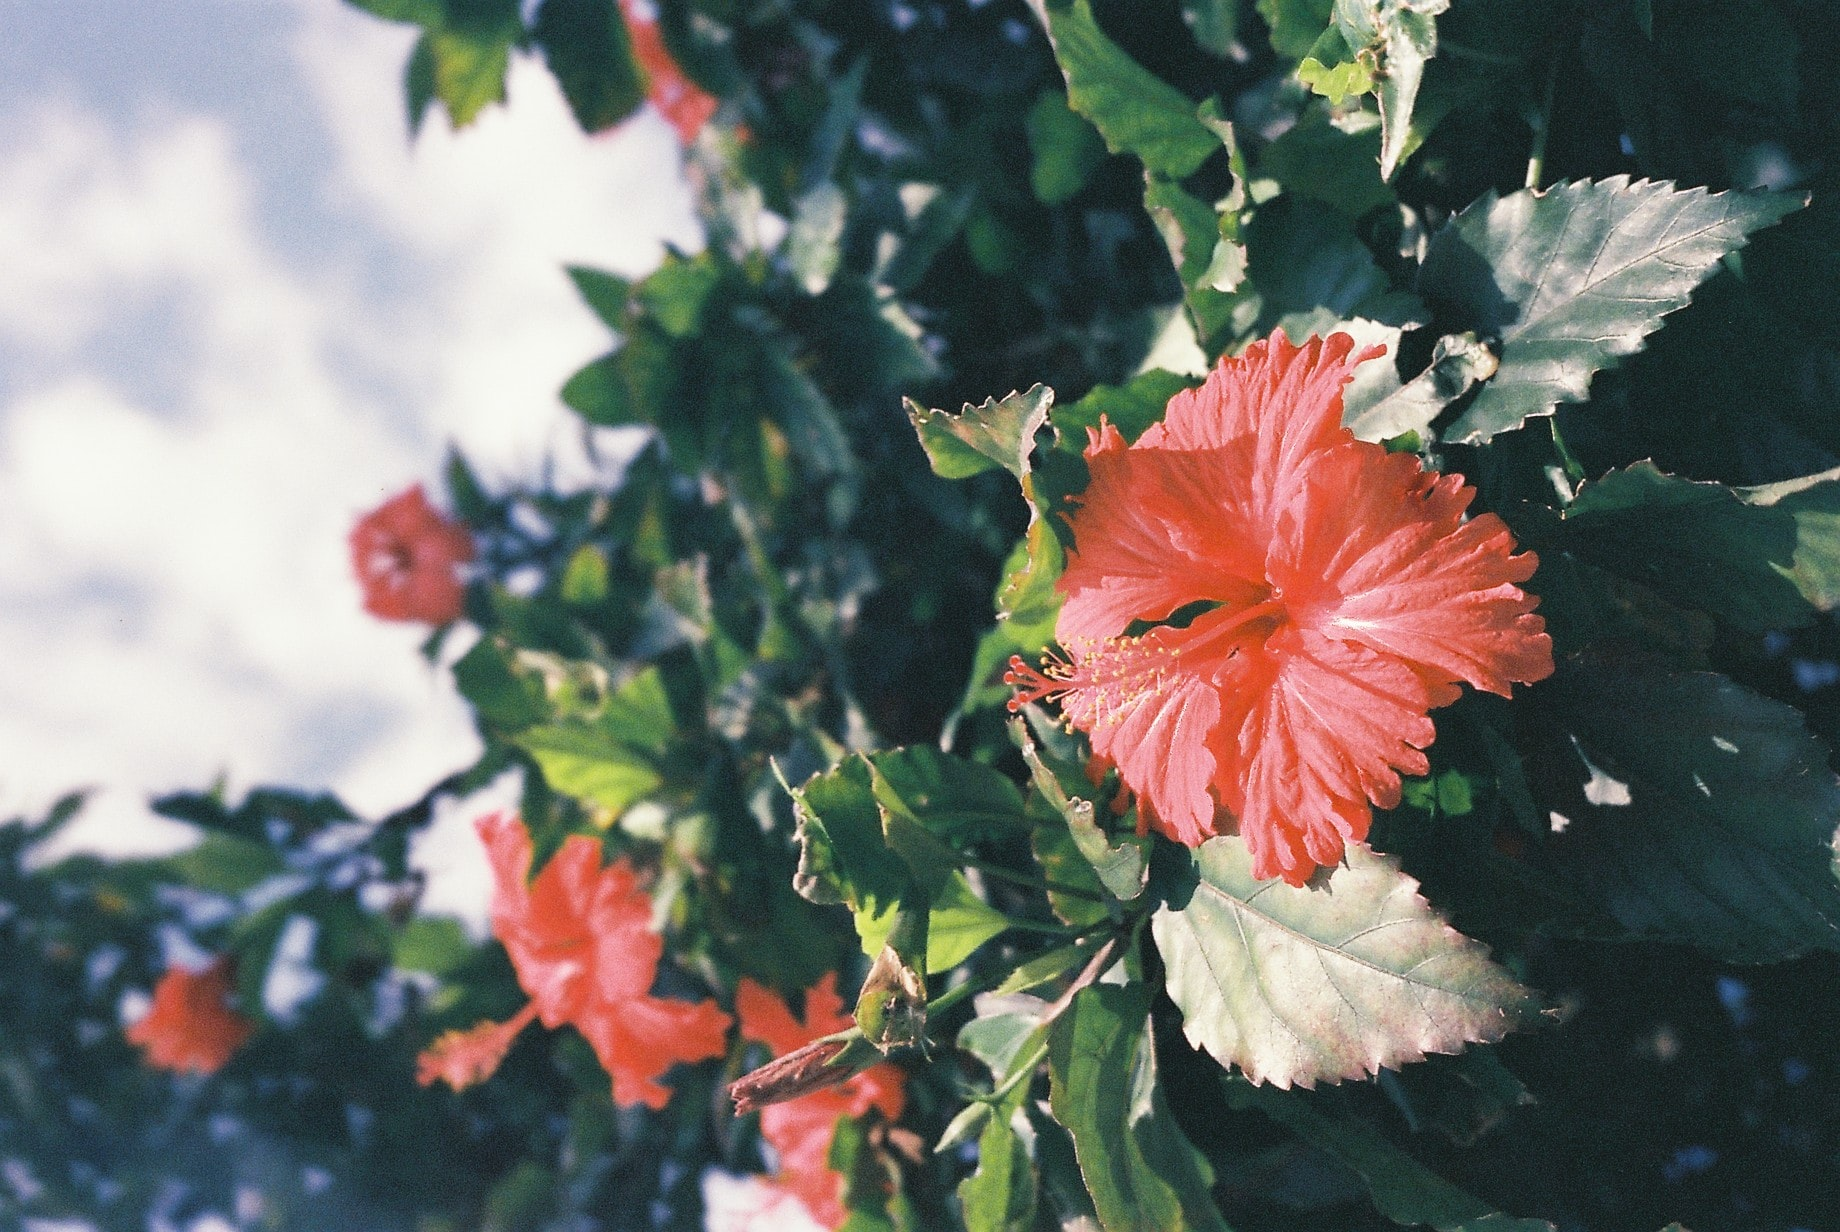 Hibiscus can help reduce the appearance of fine lines and wrinkles.